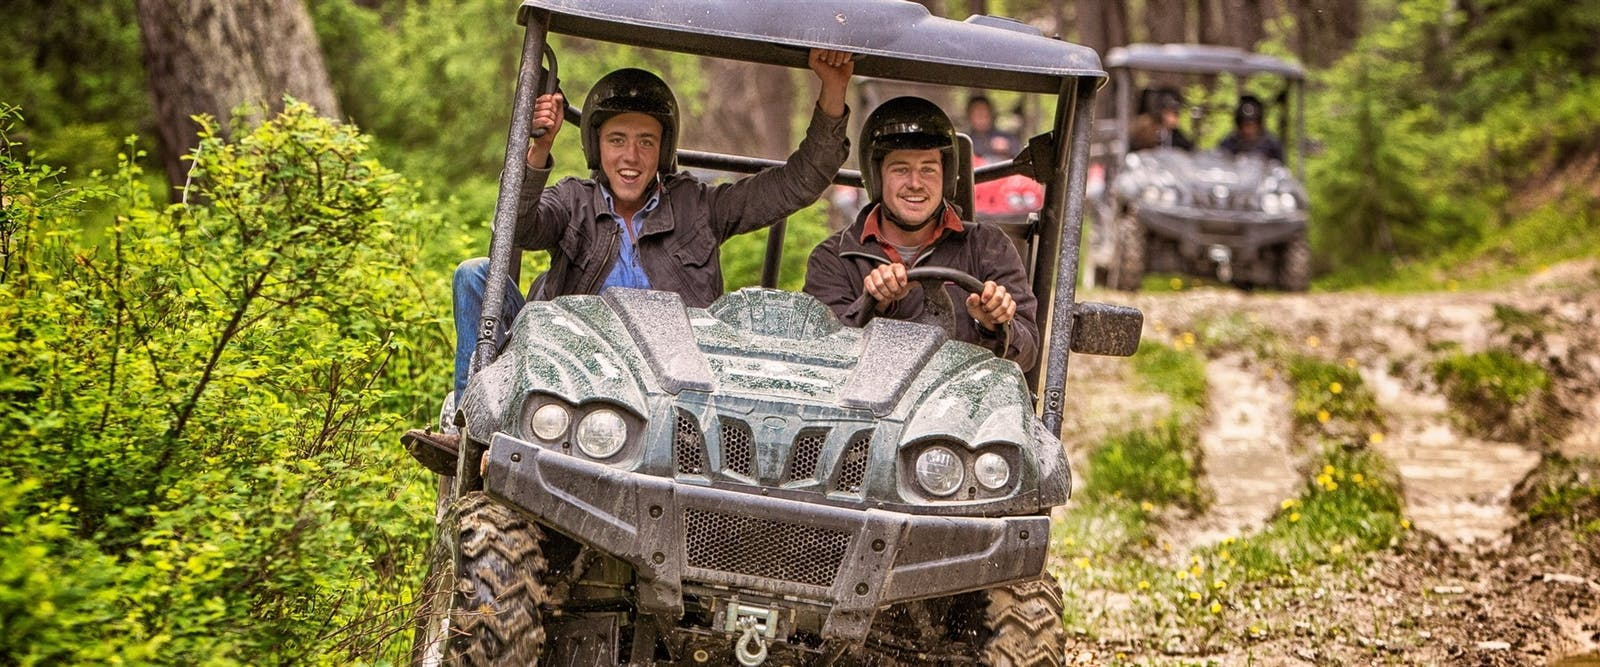 utvs at three bars guest ranch